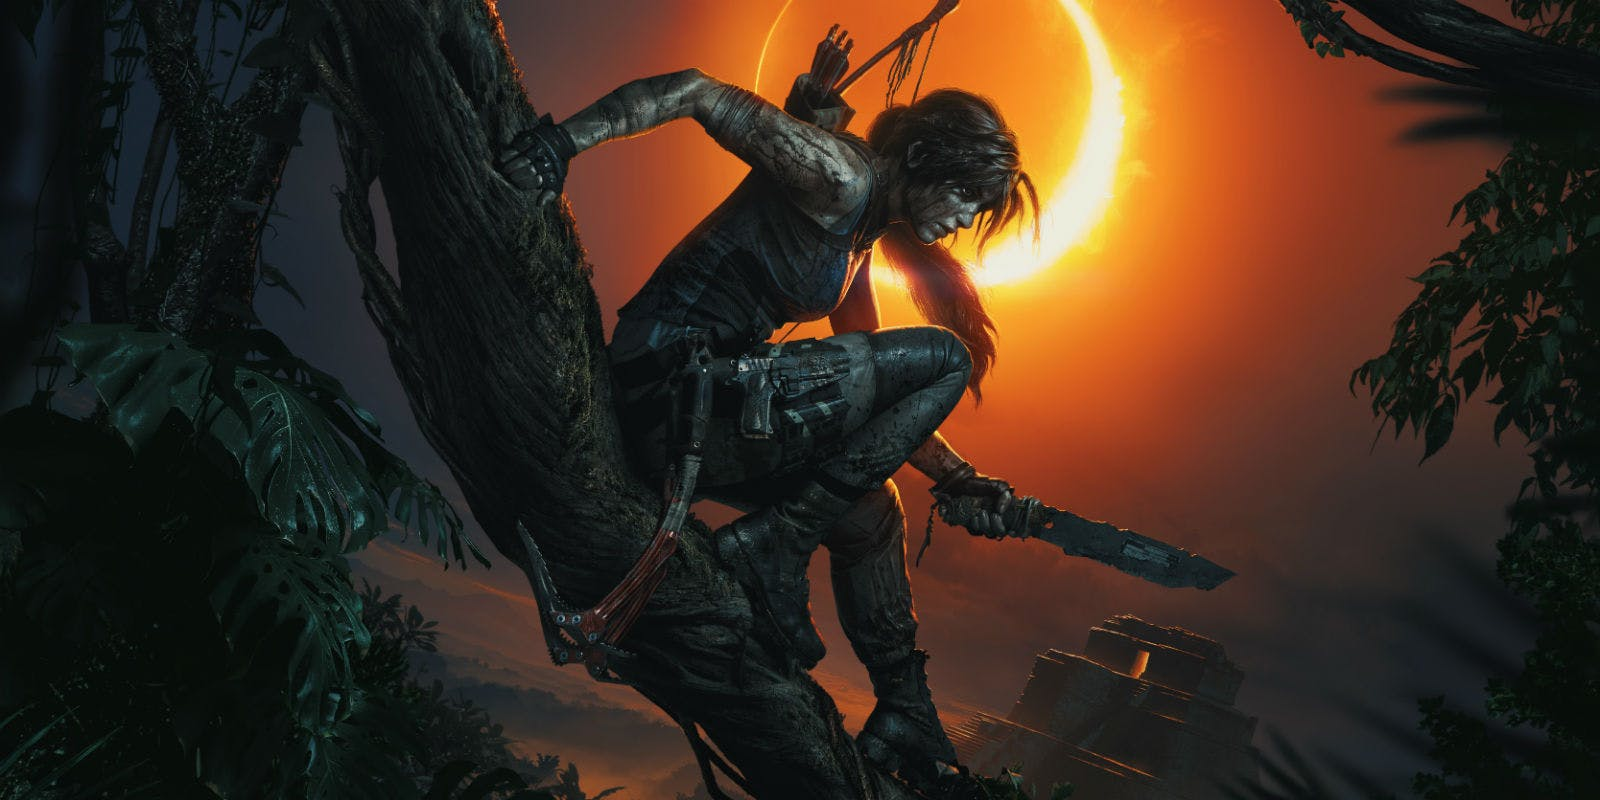 Microsoft has leaked the Shadow of the Tomb Raider cinematic trailer